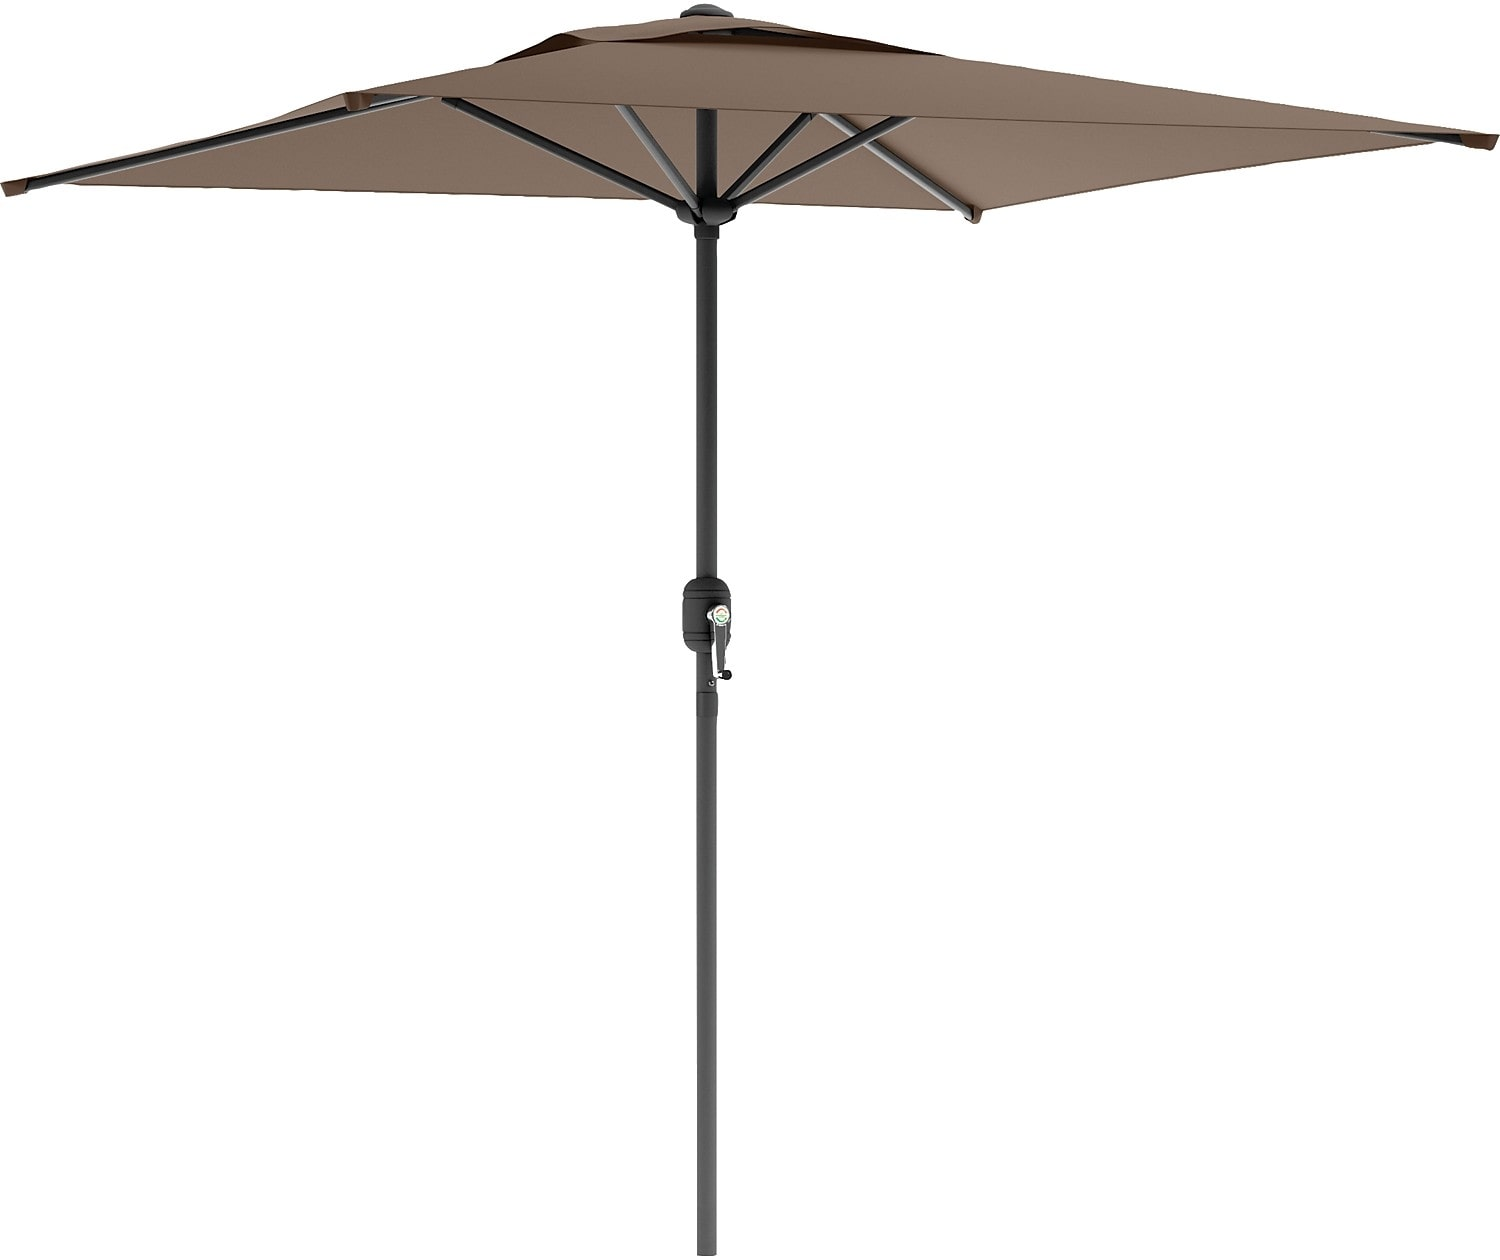 Square Patio Umbrella – Sandy Brown